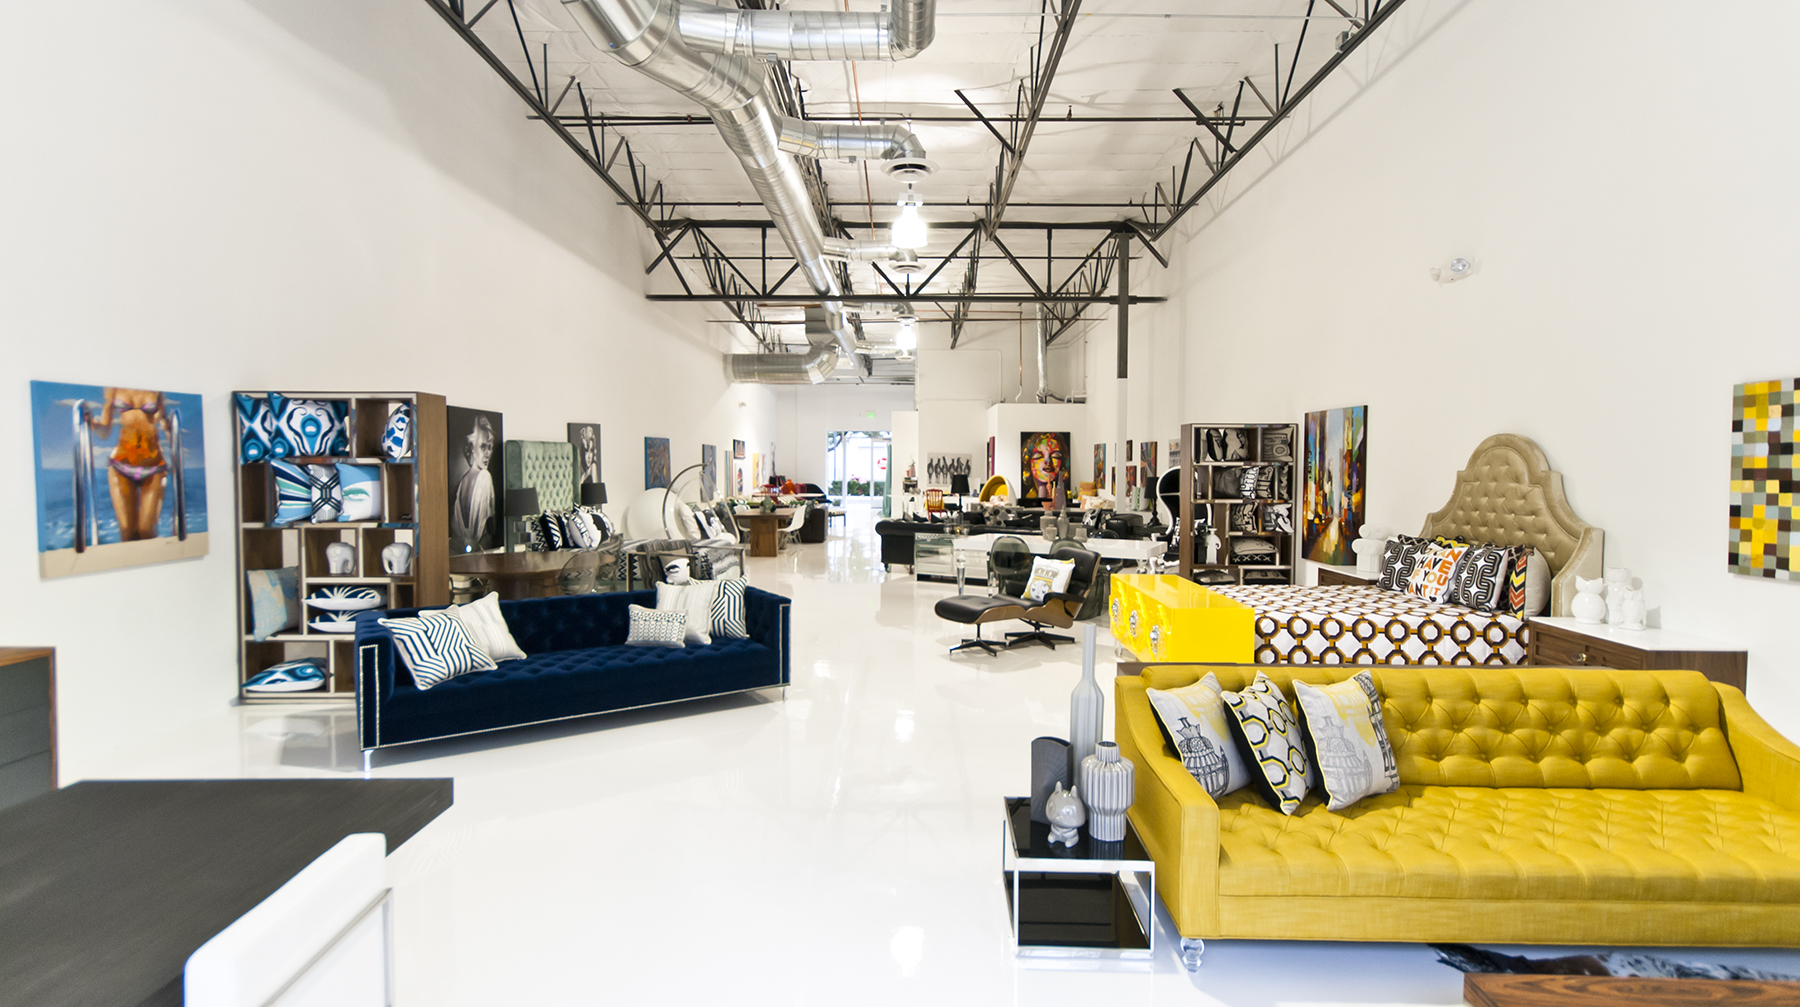 If you would like to speak to one of our sales representatives at SoCo   please contact our showroom at  714  424 0647  Let us help you design your  next. Modern Furniture Store in Orange County  CA